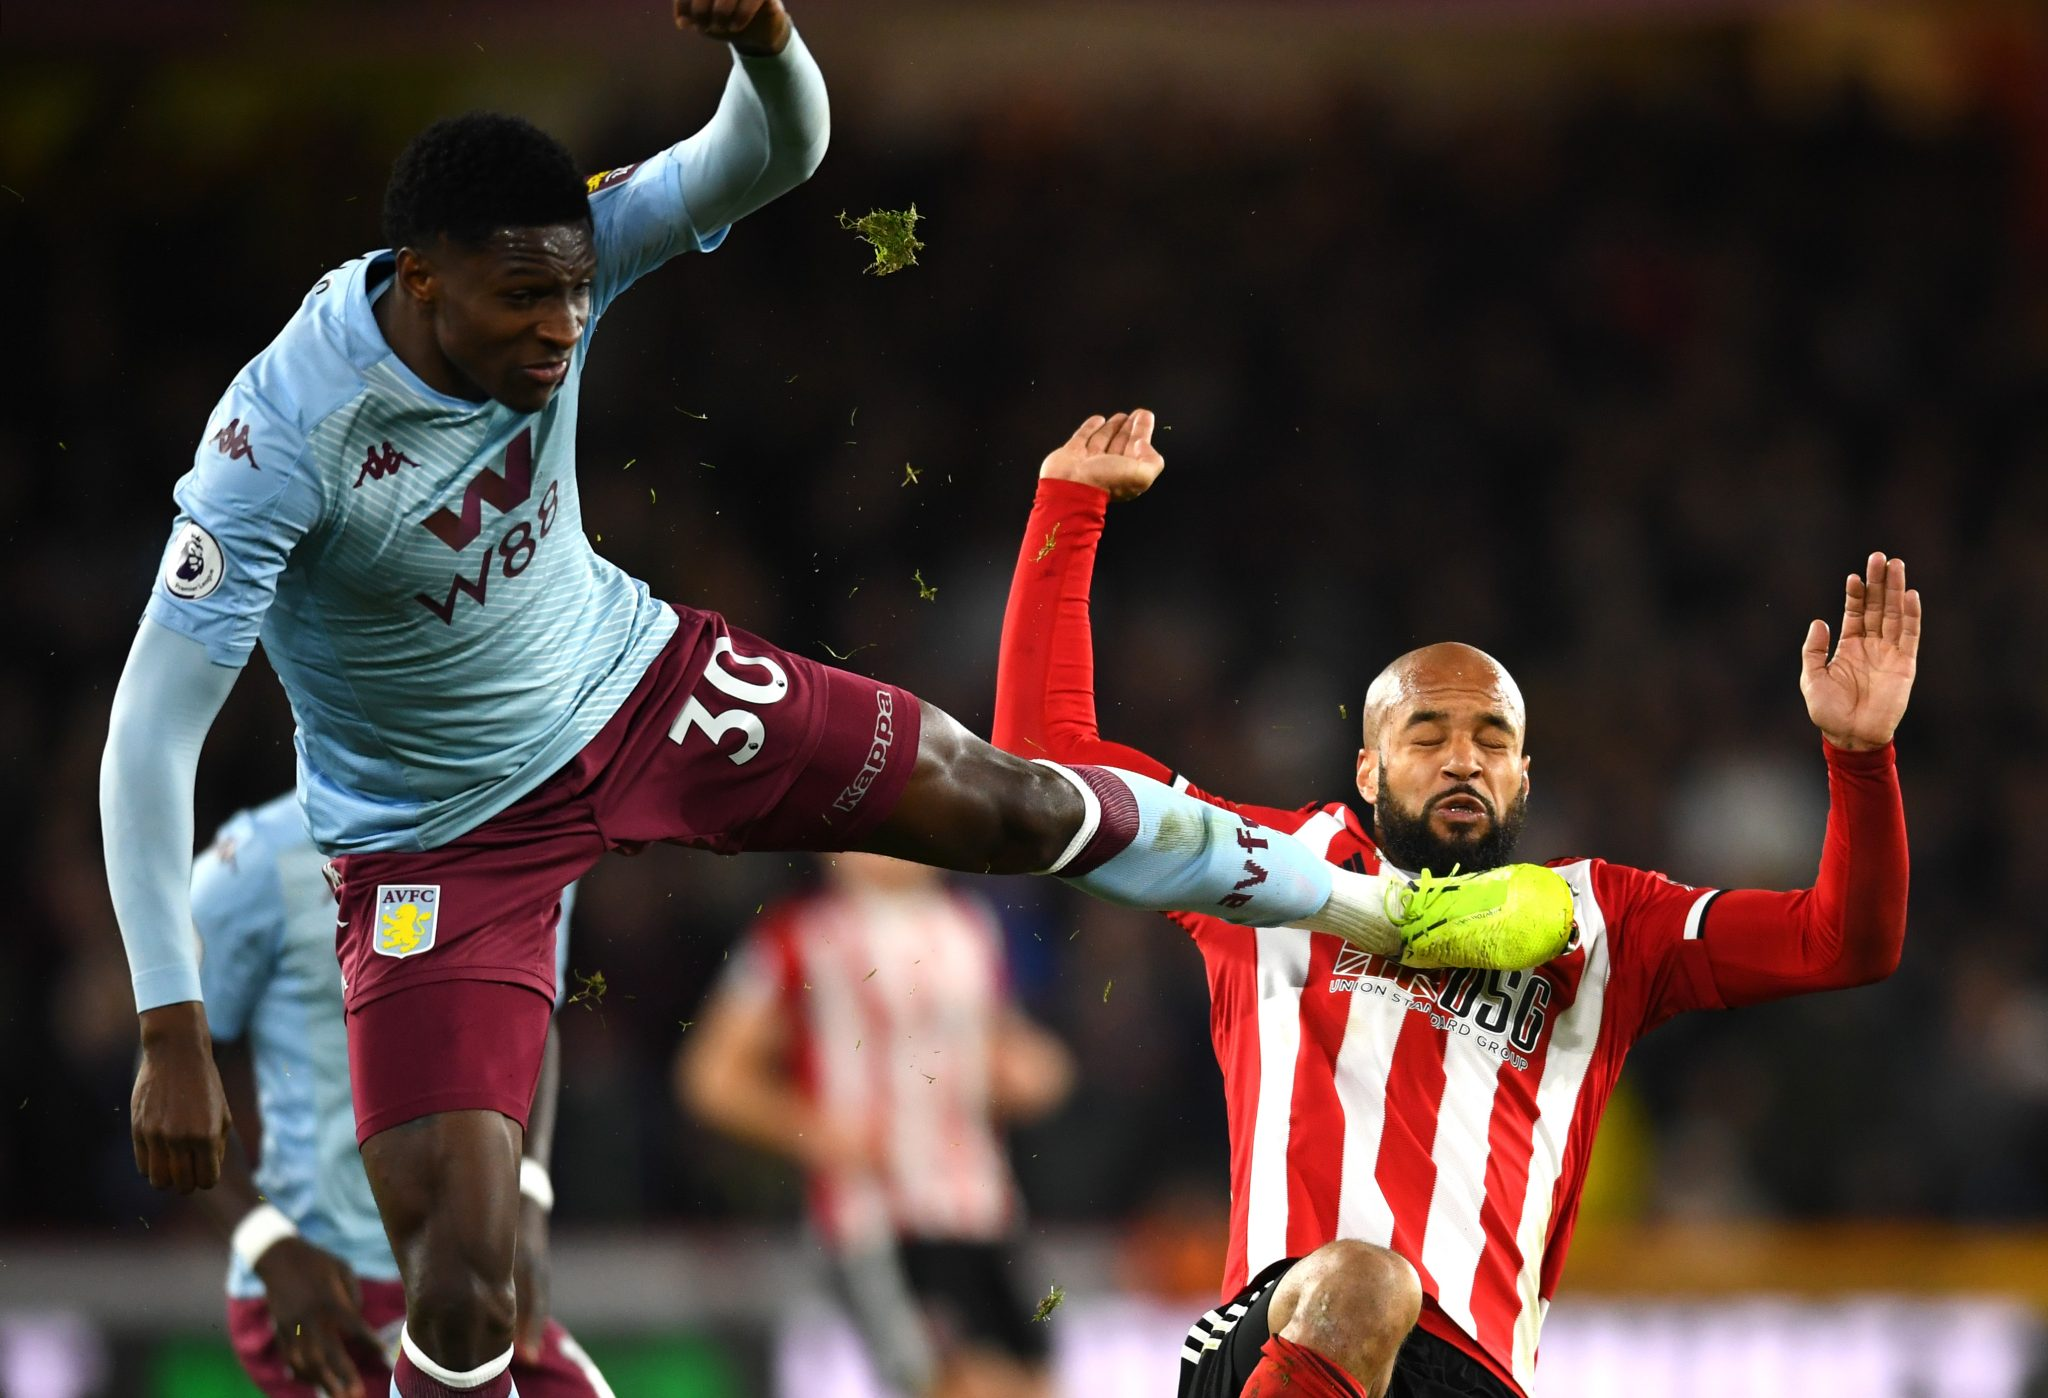 Aston Villa fall 2-0 to suave second-half from Sheffield